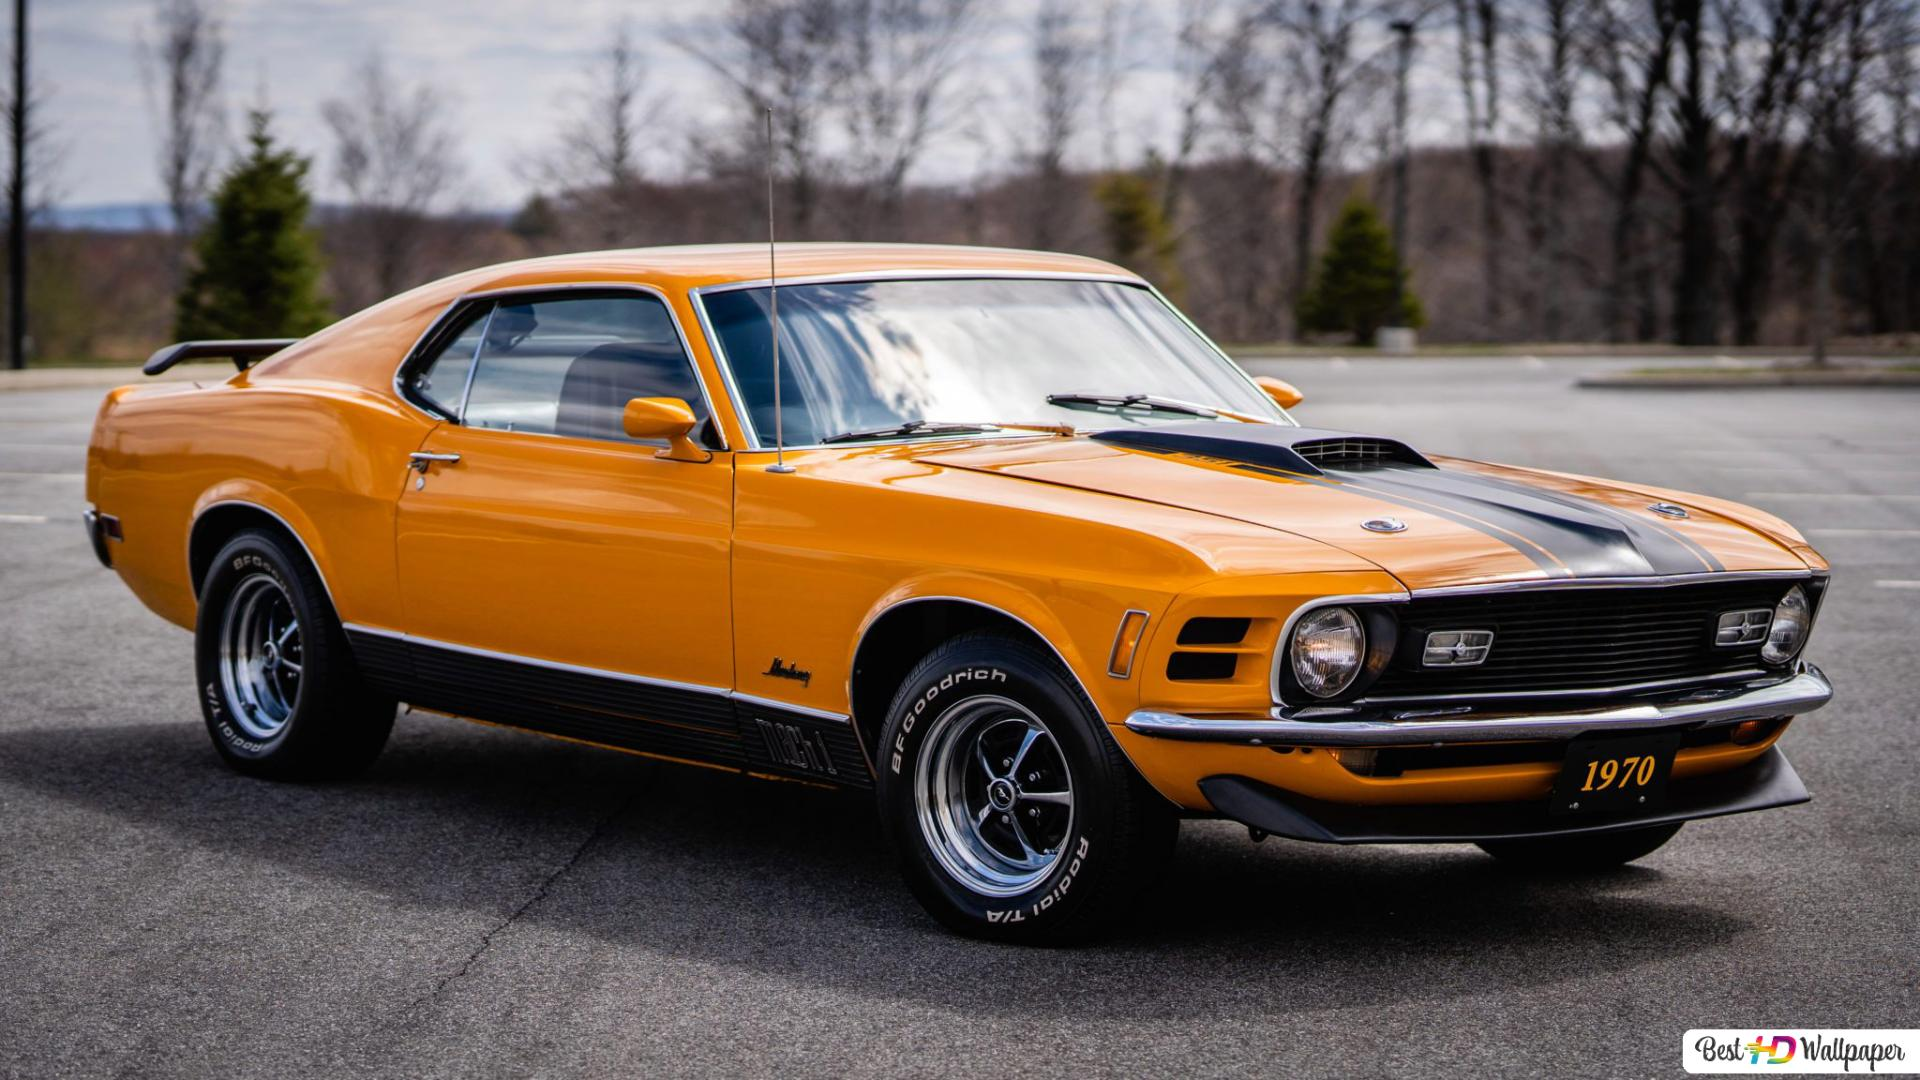 1970 Ford Mustang Mach 1 03 Hd Wallpaper Download